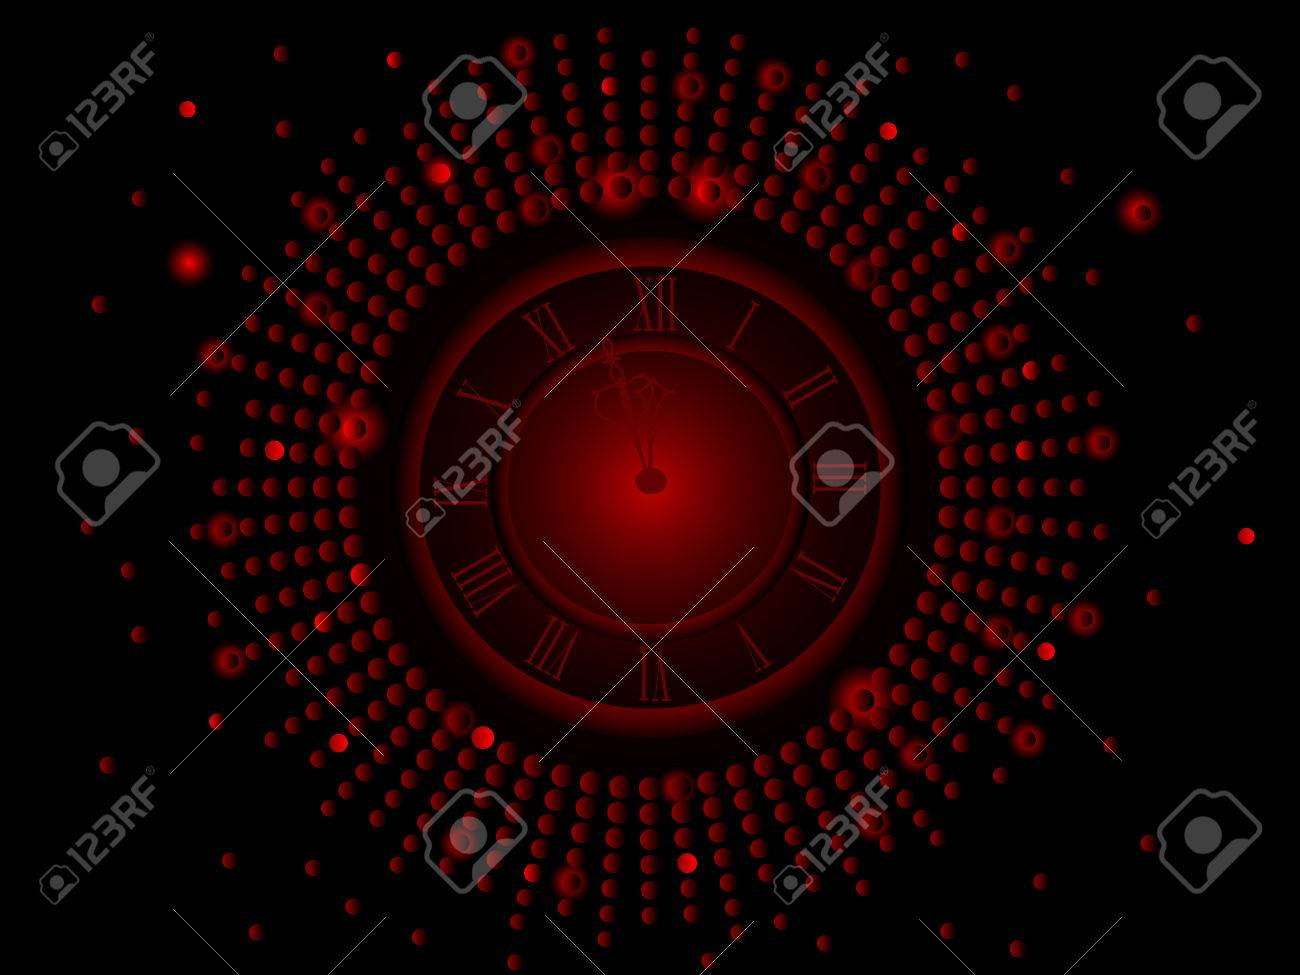 Black and red  New Year clock -  illustration Stock Vector - 8148443